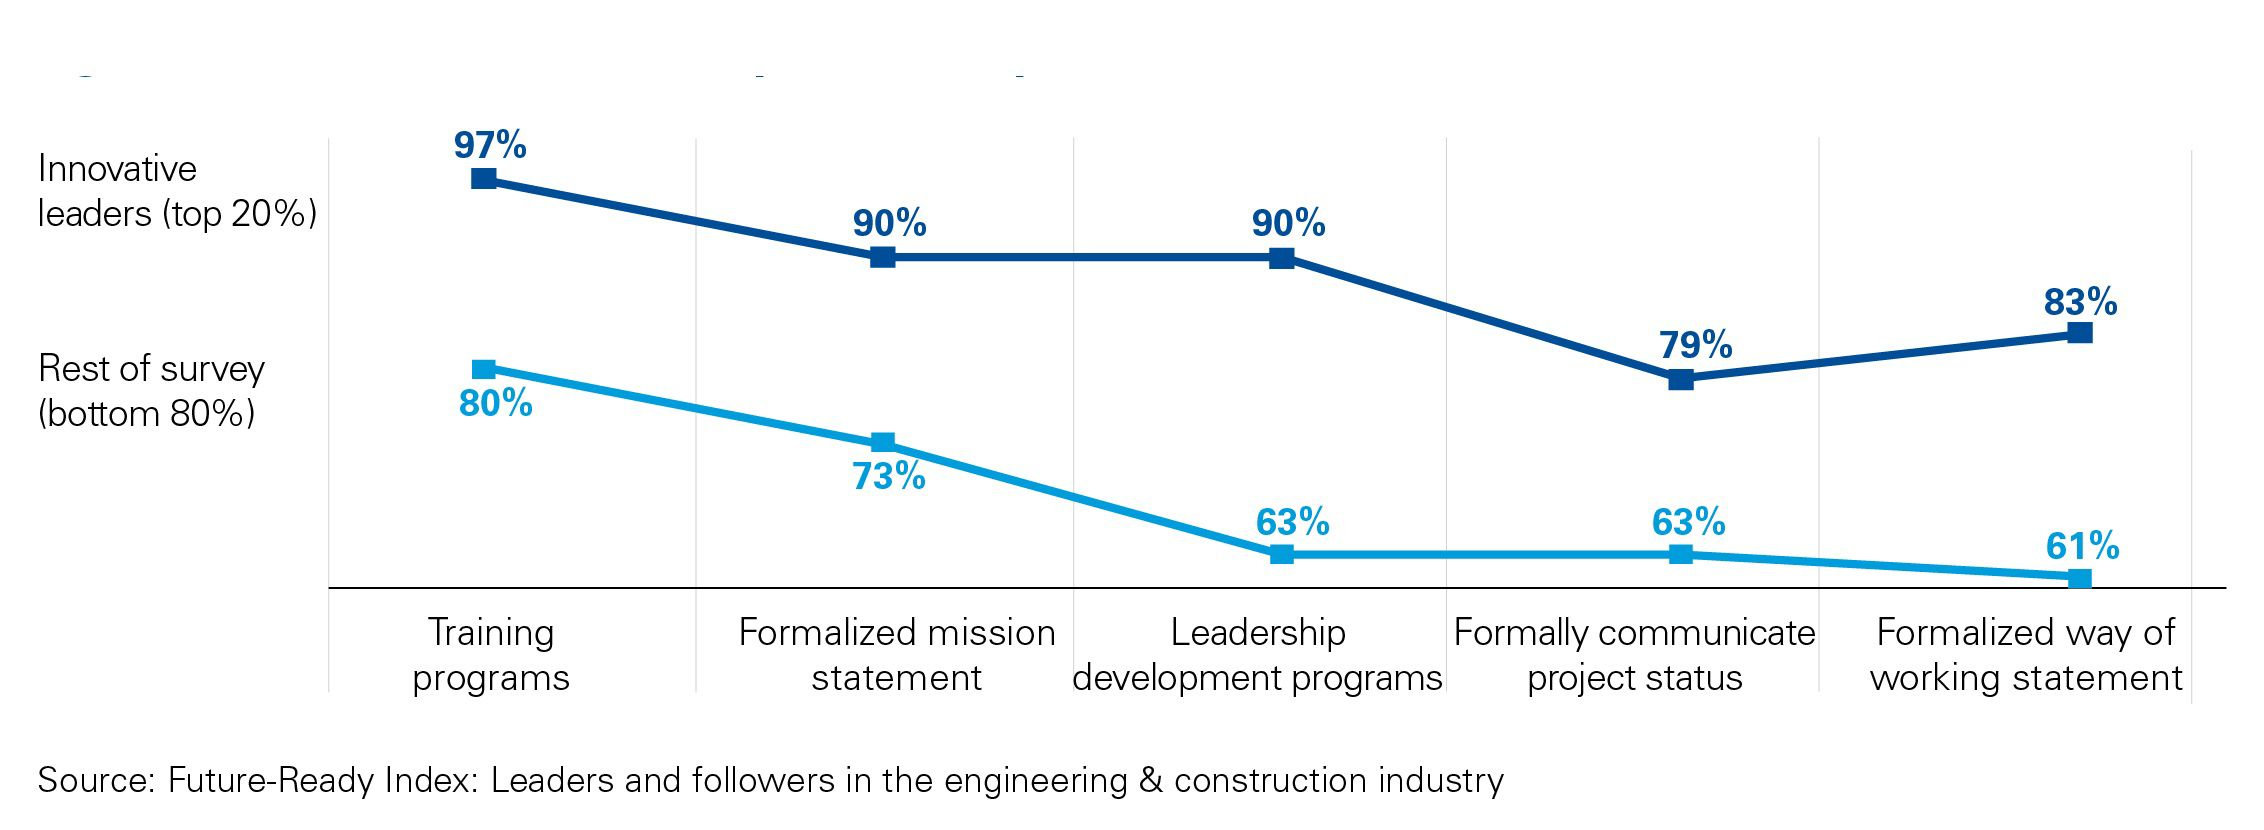 Graph showing top five soft controls implemented by innovative leaders